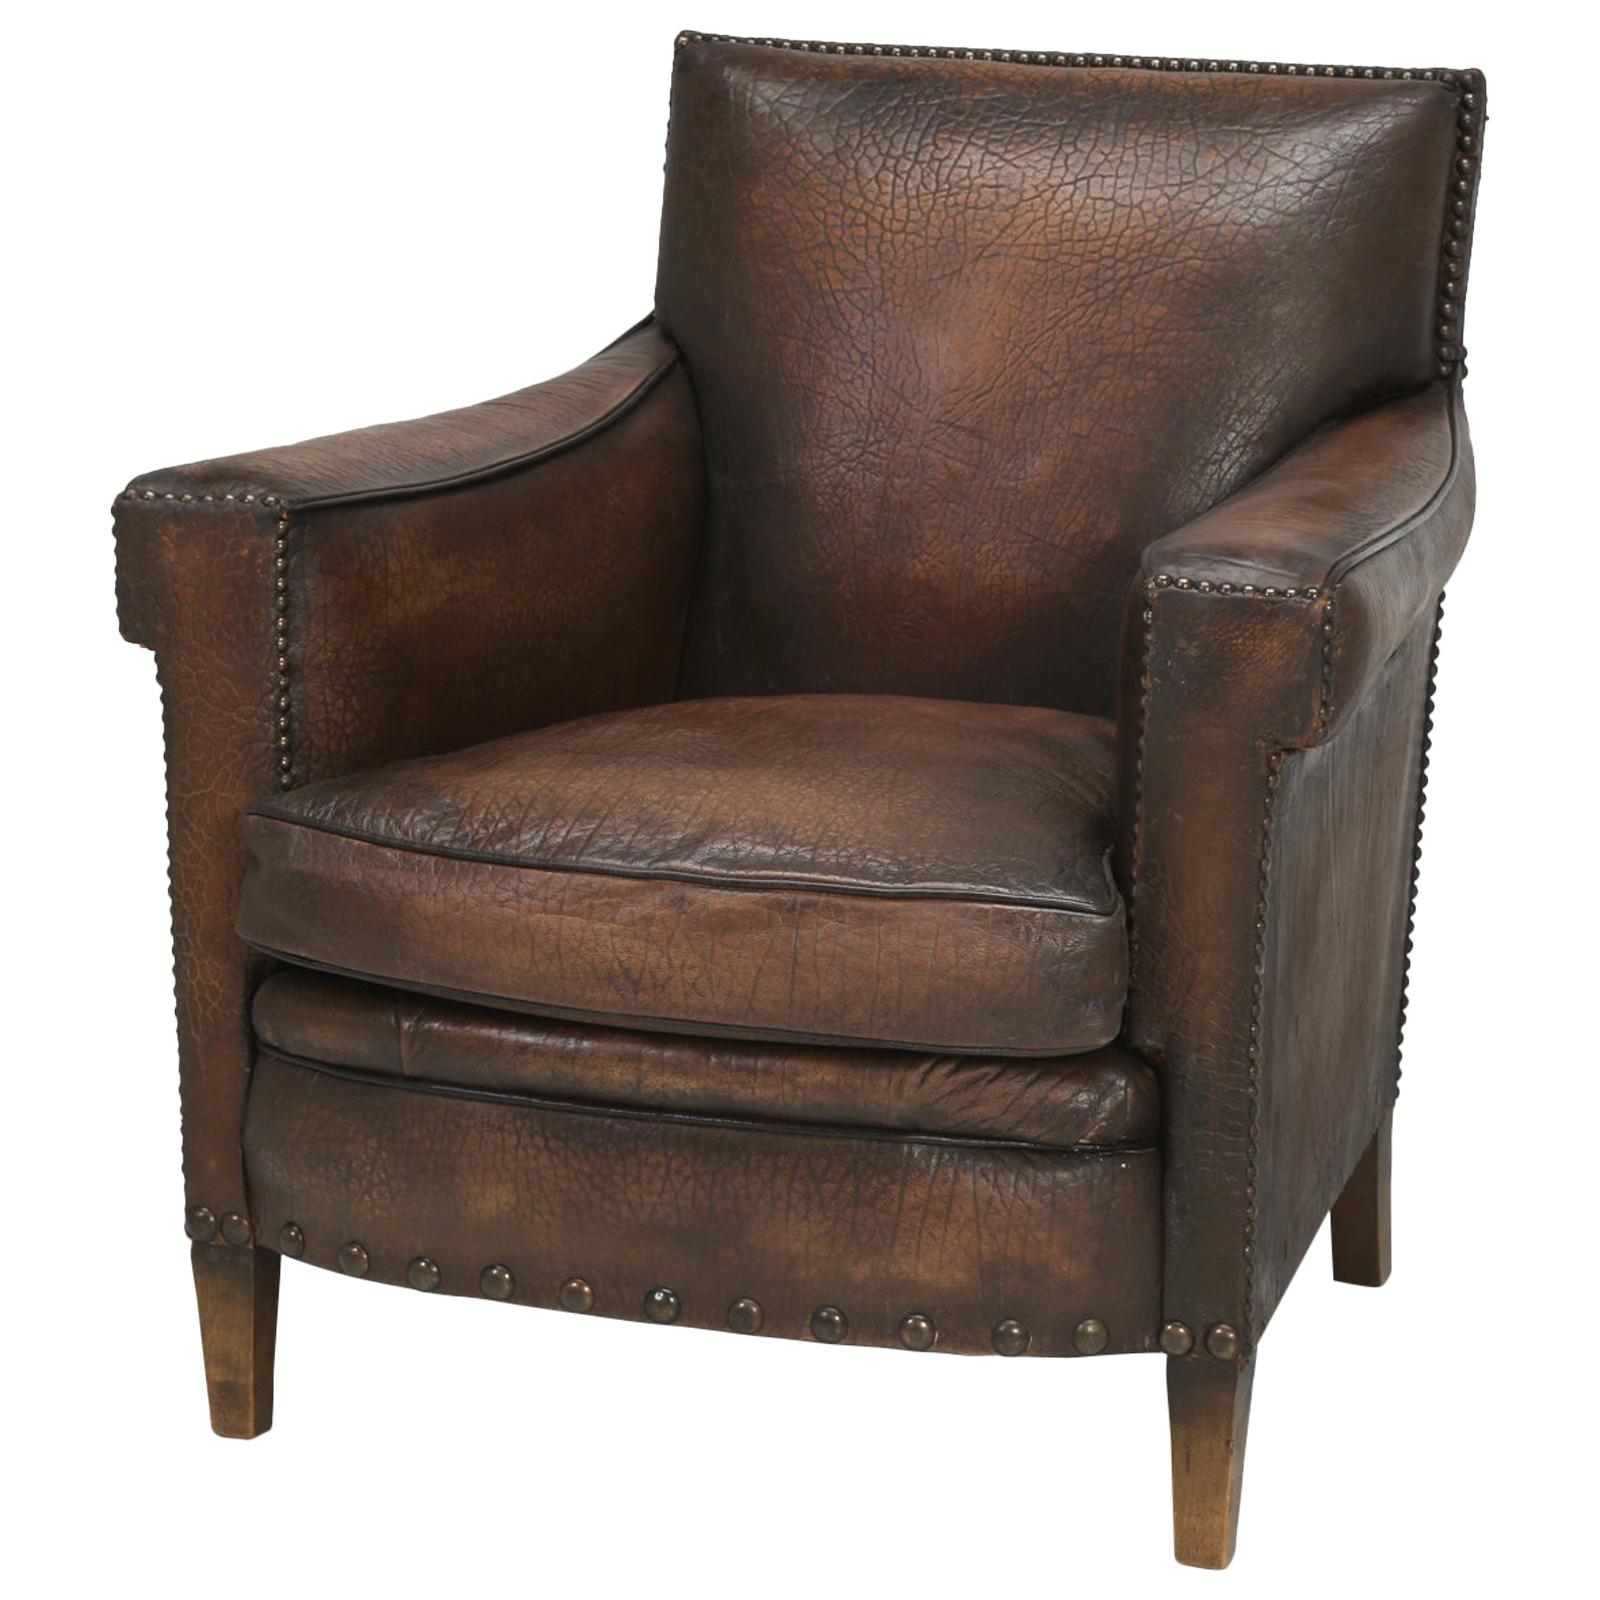 French Leather Club Chair In An Elephant Pattern Embossed Cowhide Restored